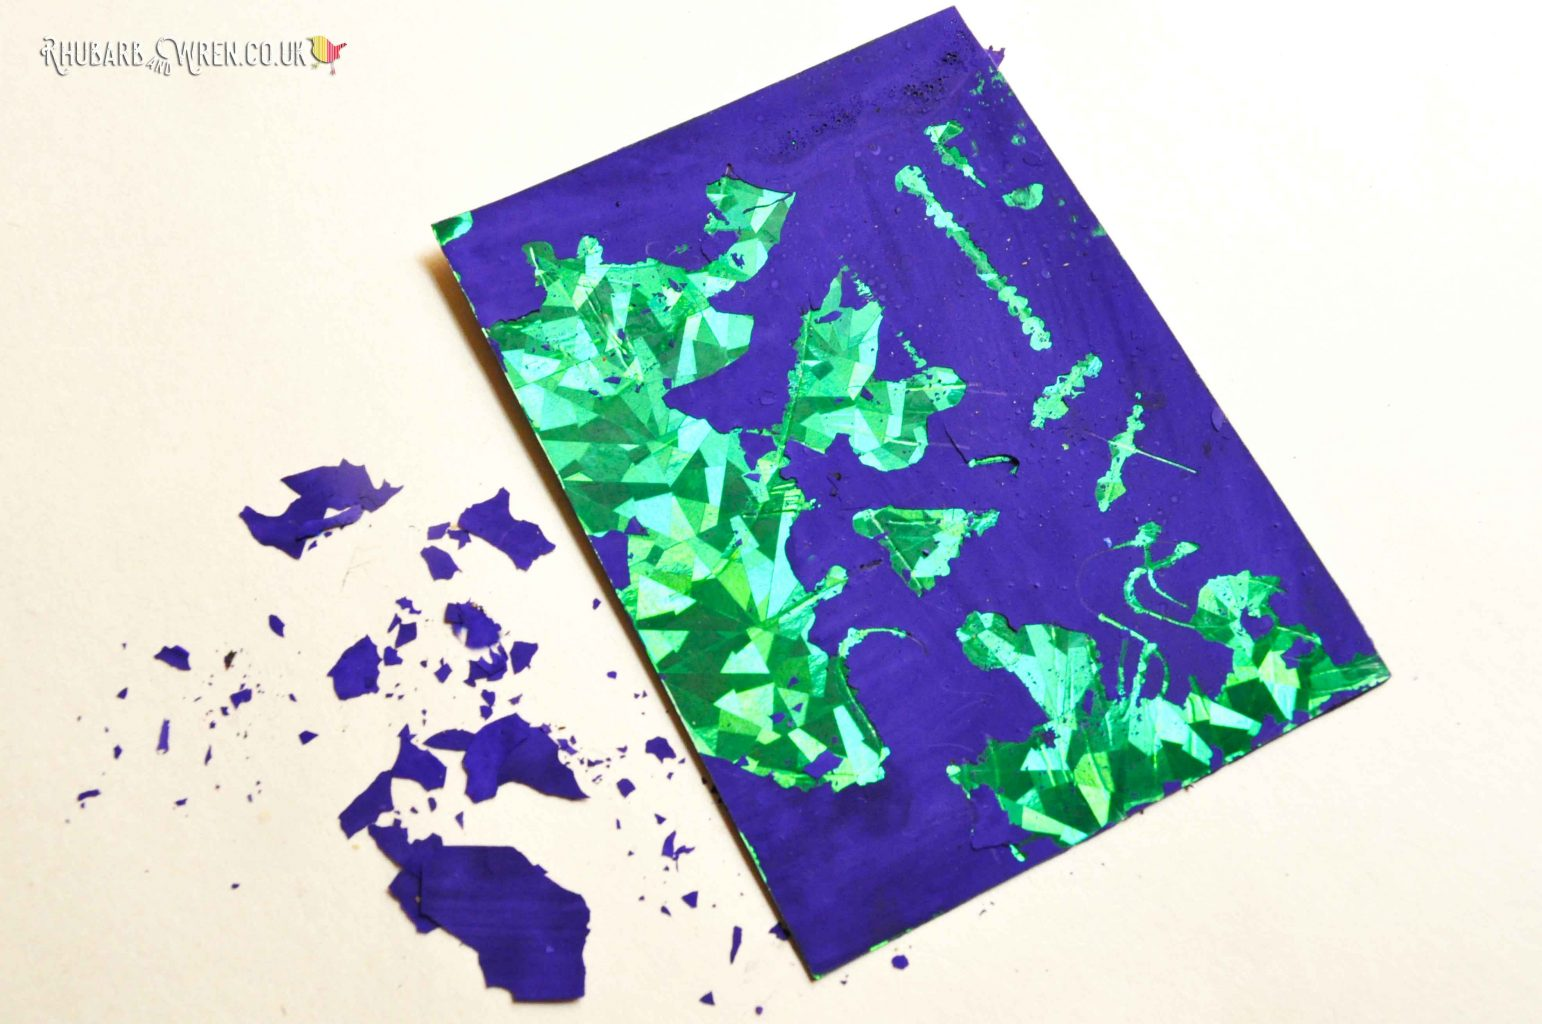 diy scratch art card mistakes to avoid - flaky paint